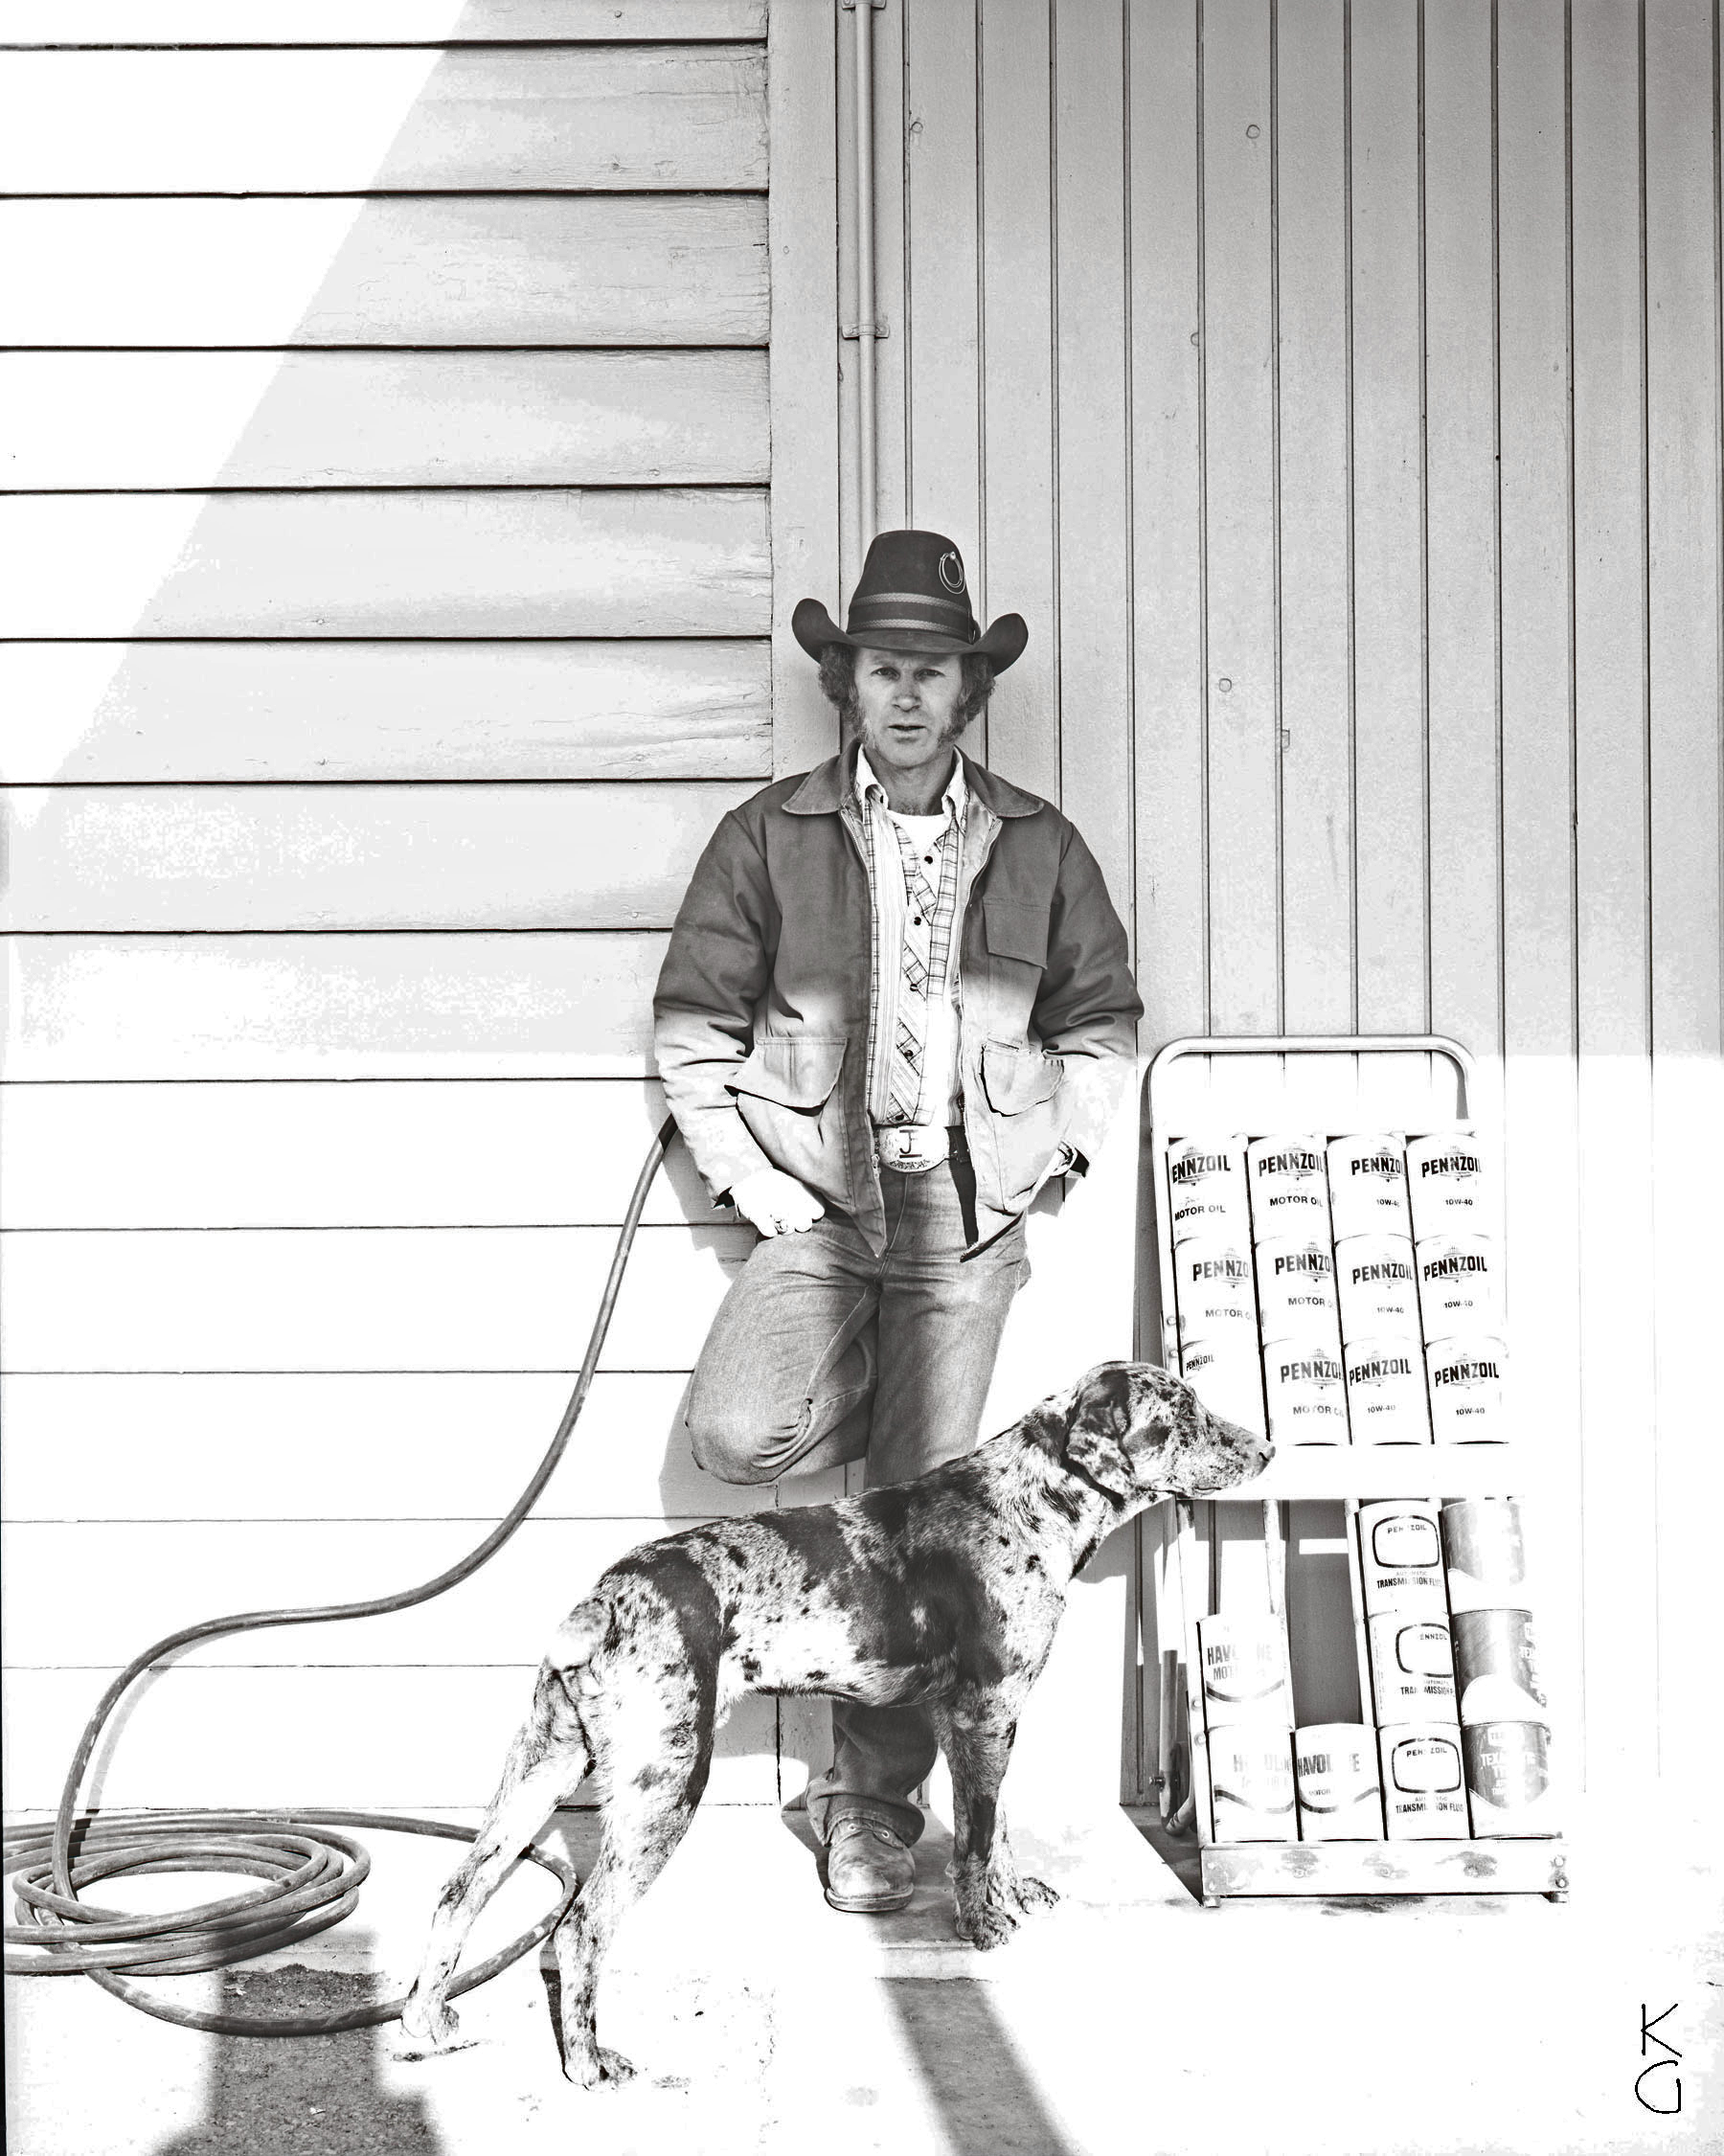 Cowboy and Dog, The Panhandle 1987